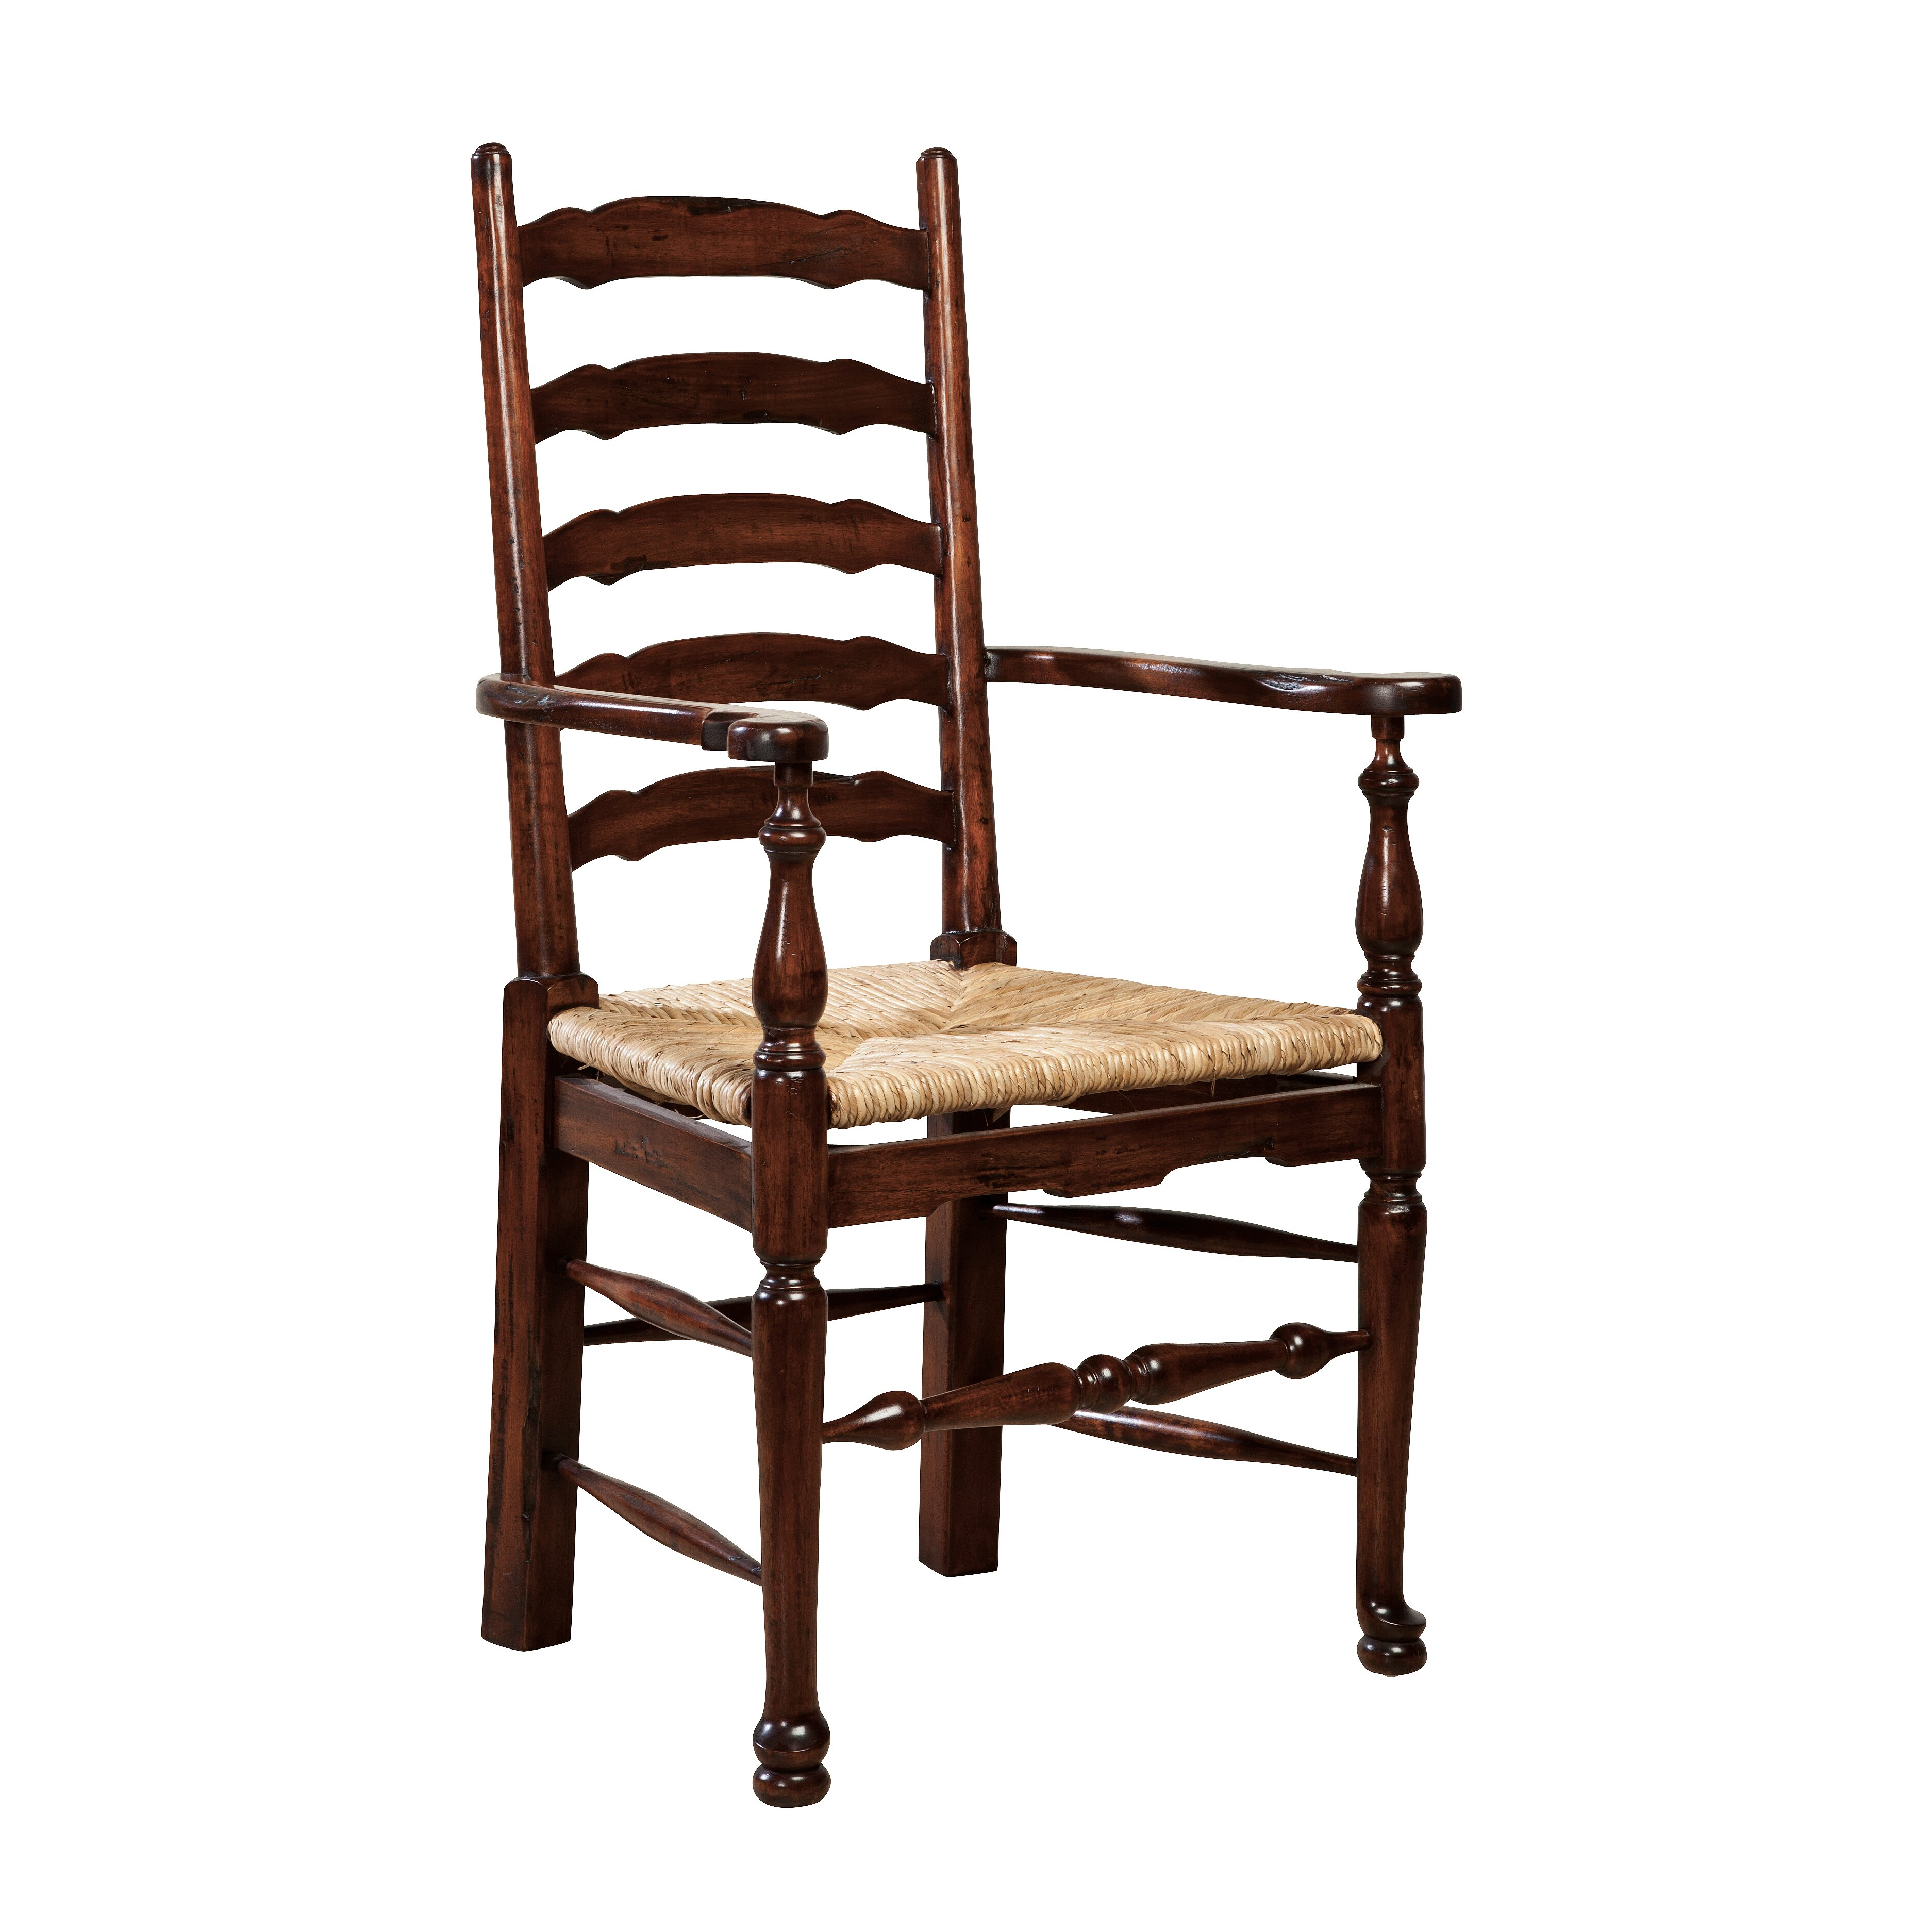 Furniture classics ltd english country arm chair reviews for English country furniture